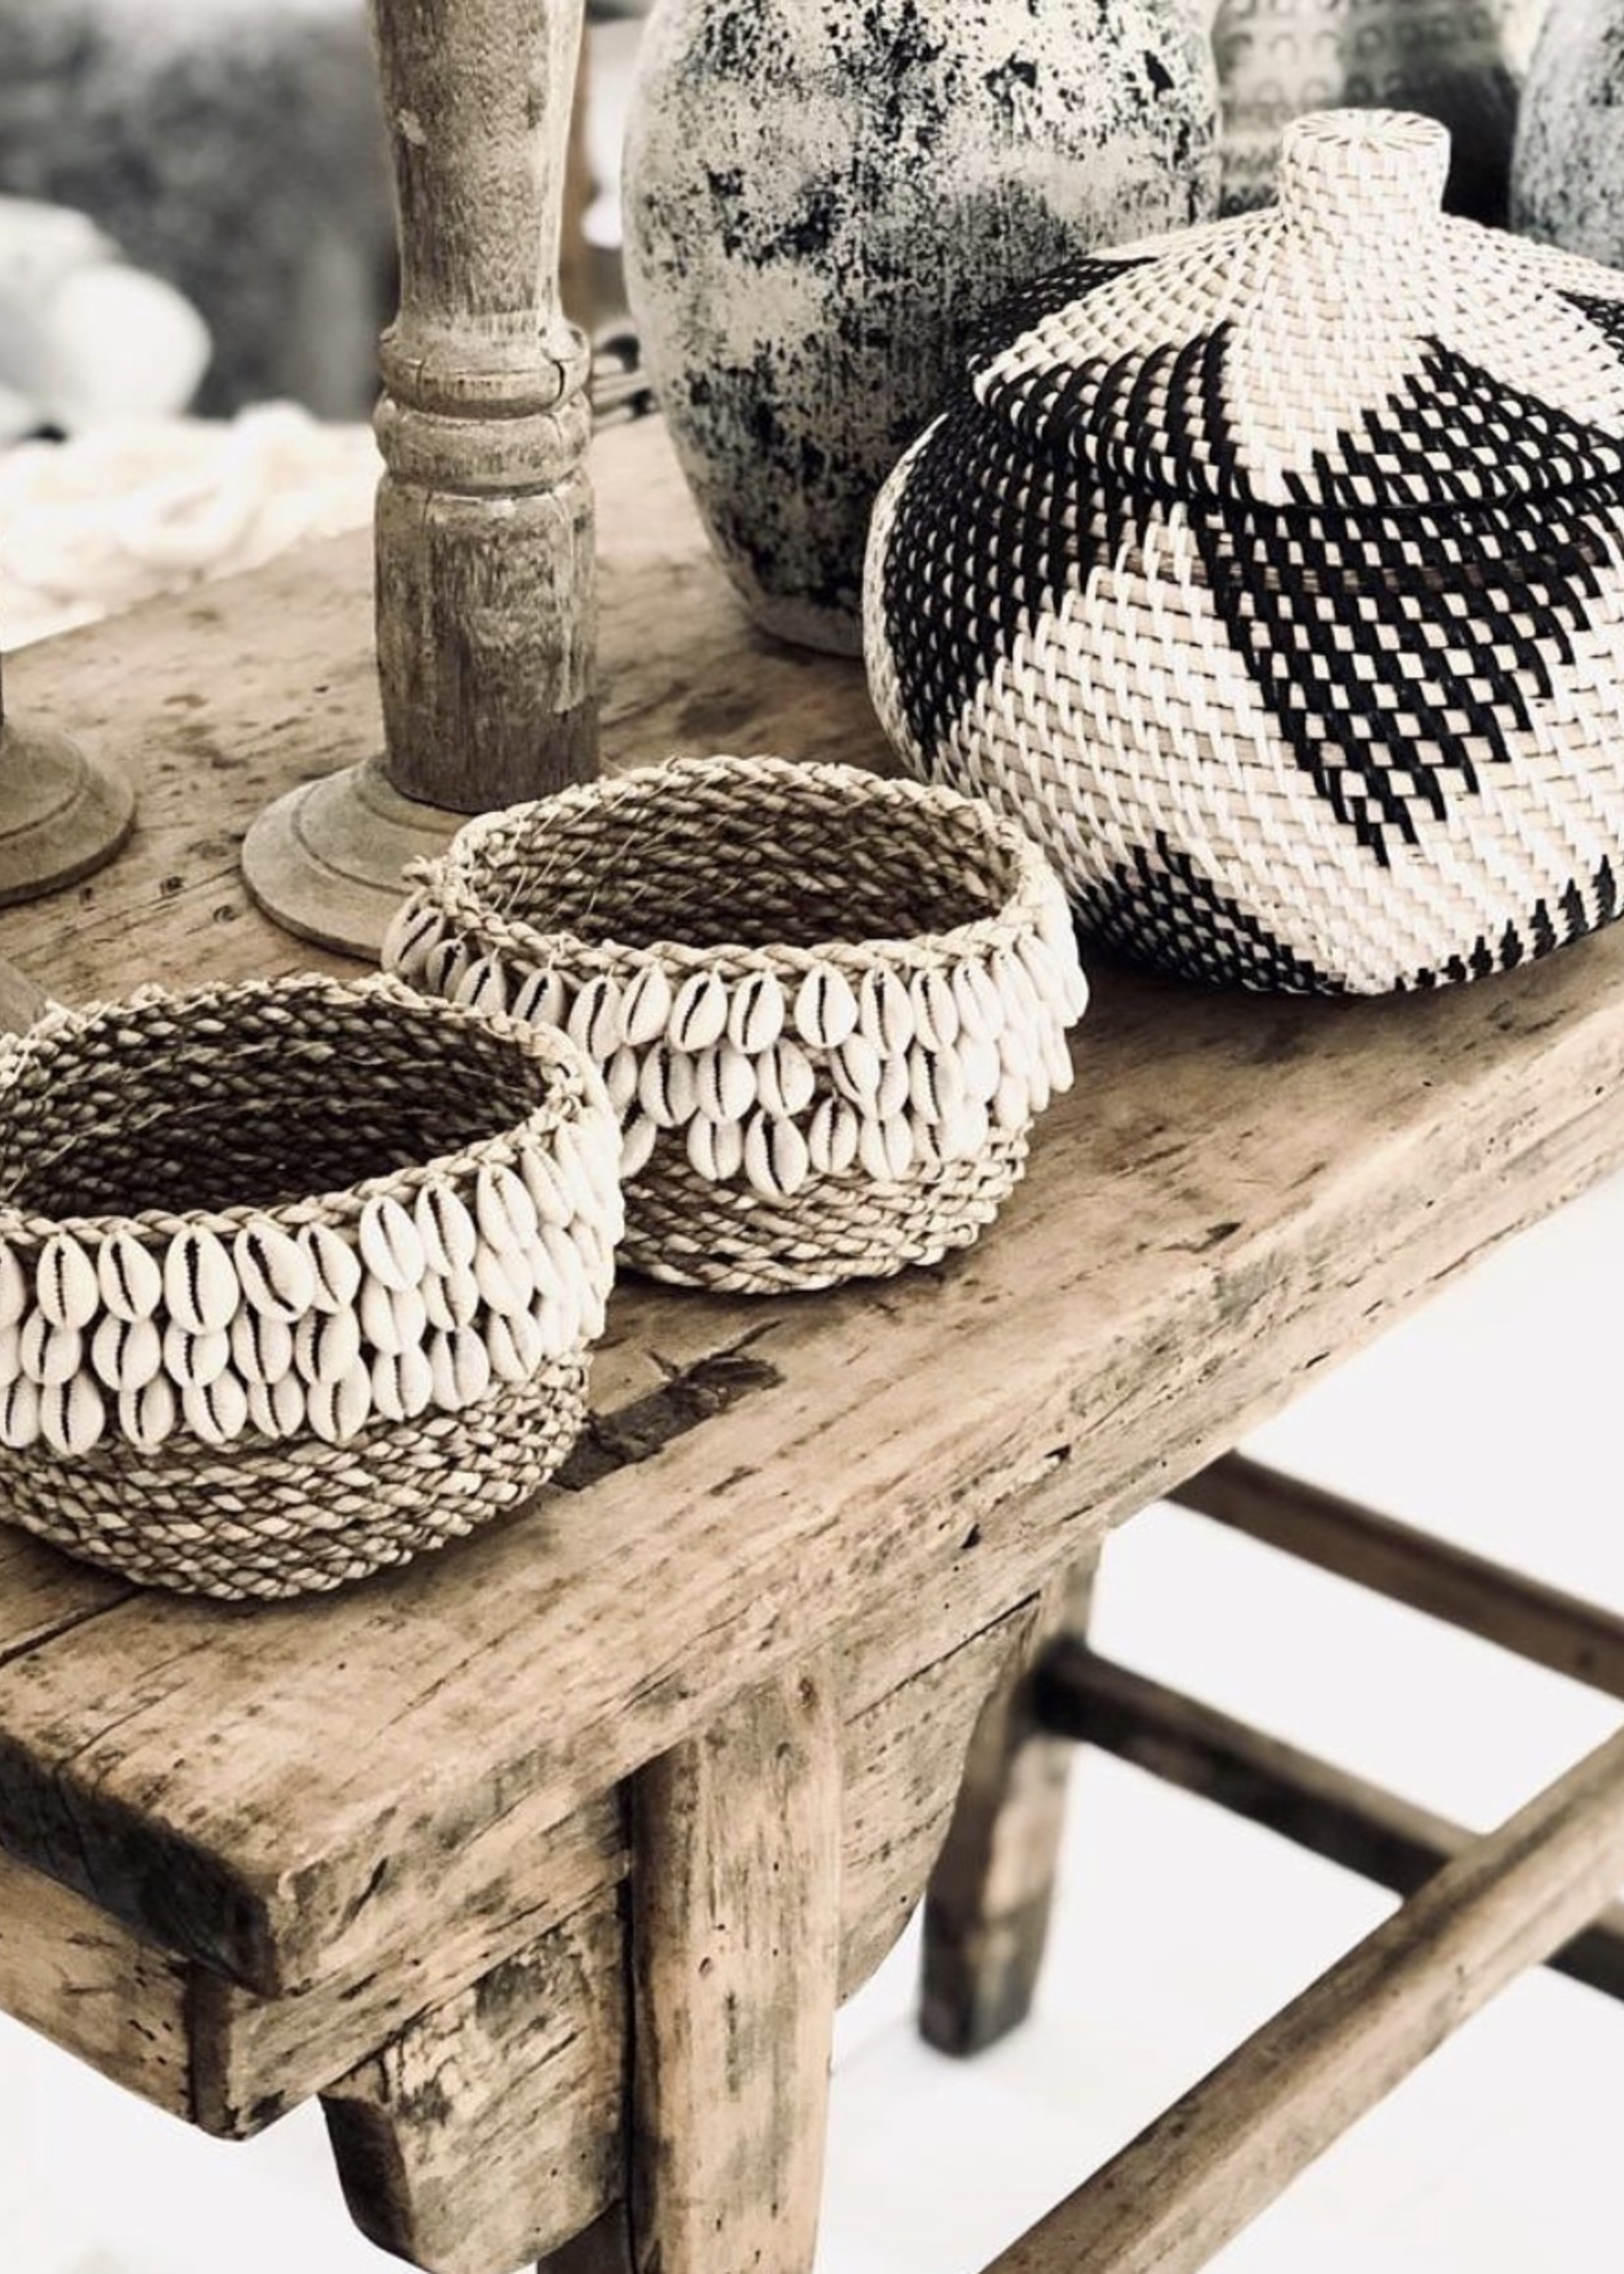 The Weaved Cowrie Basket #3 - Natural